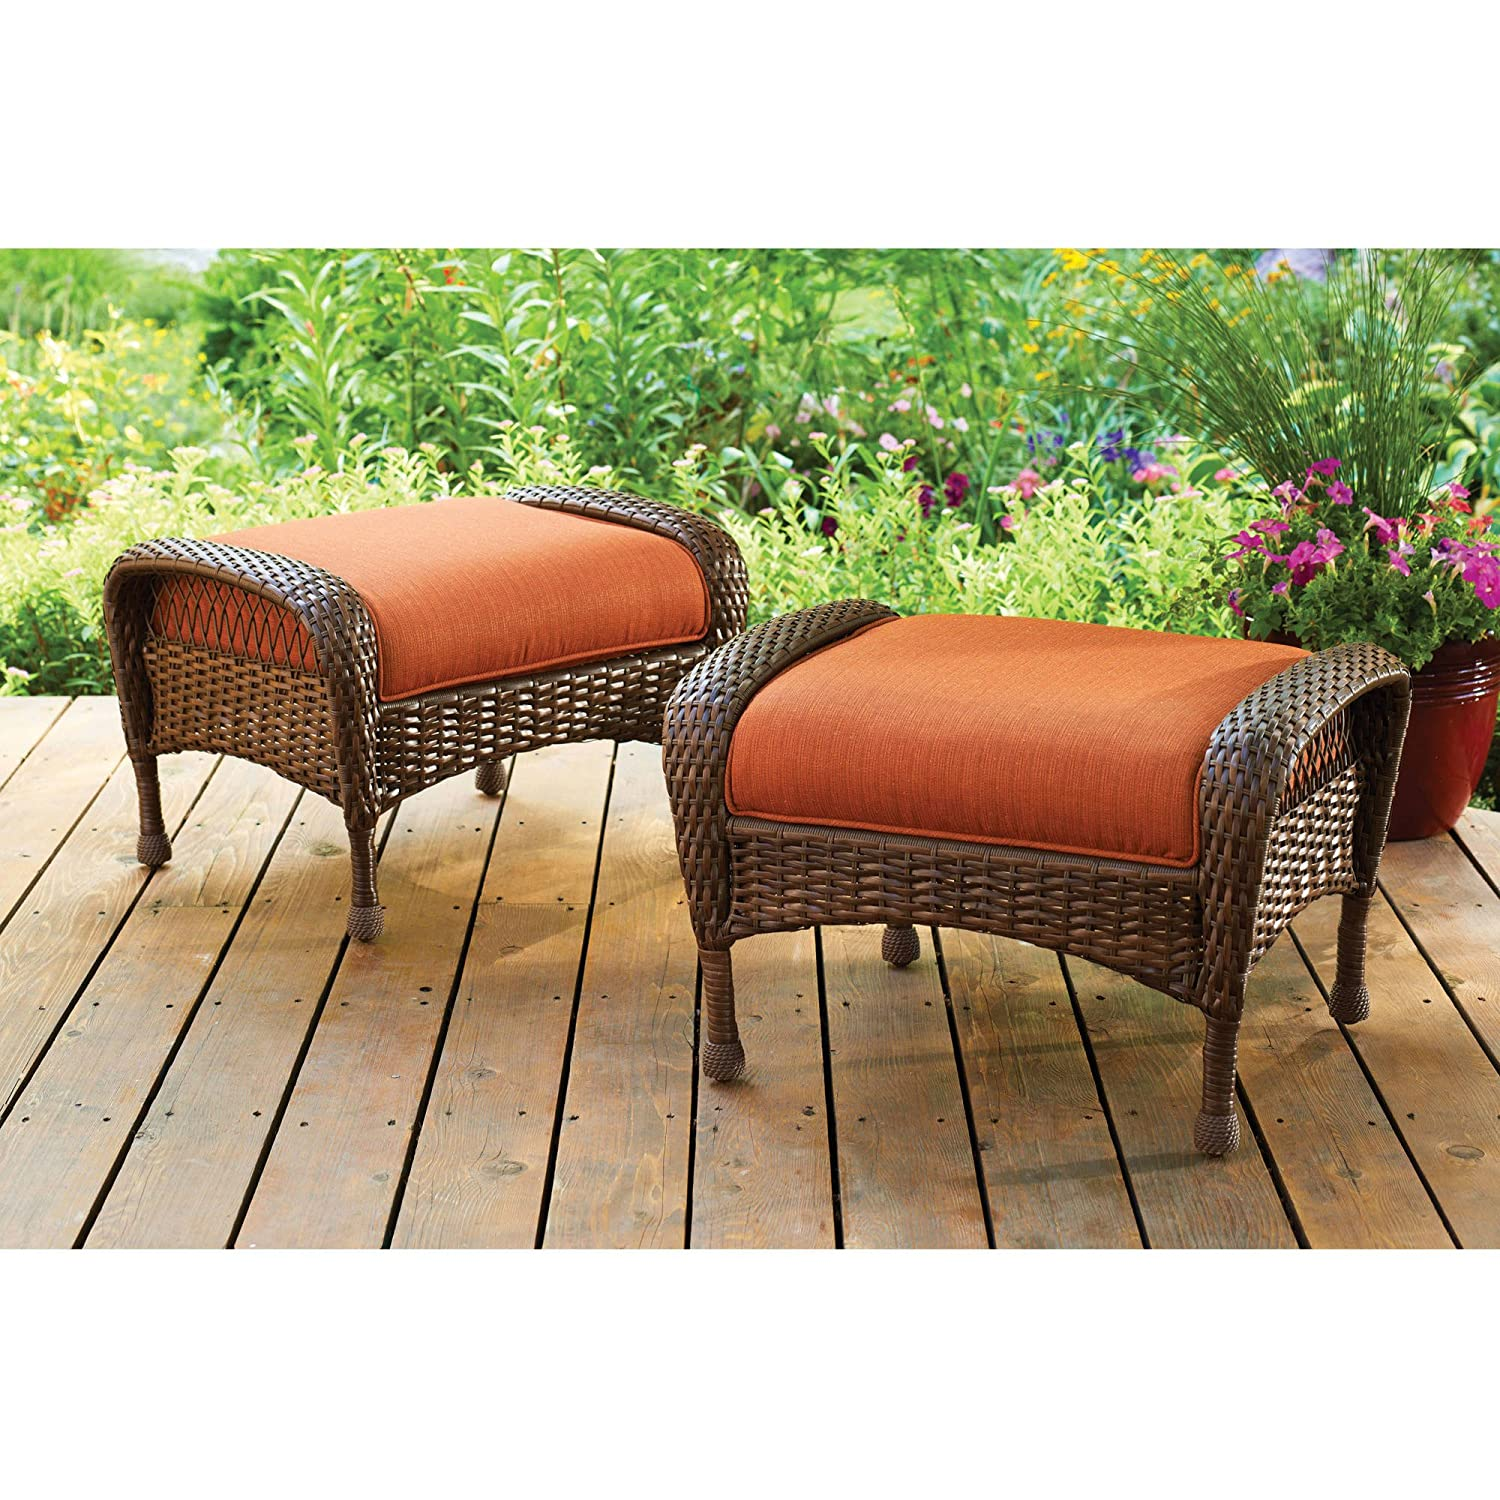 Better Homes Gardens* 3-Piece Balcony Bistro Set in Burnt Orange